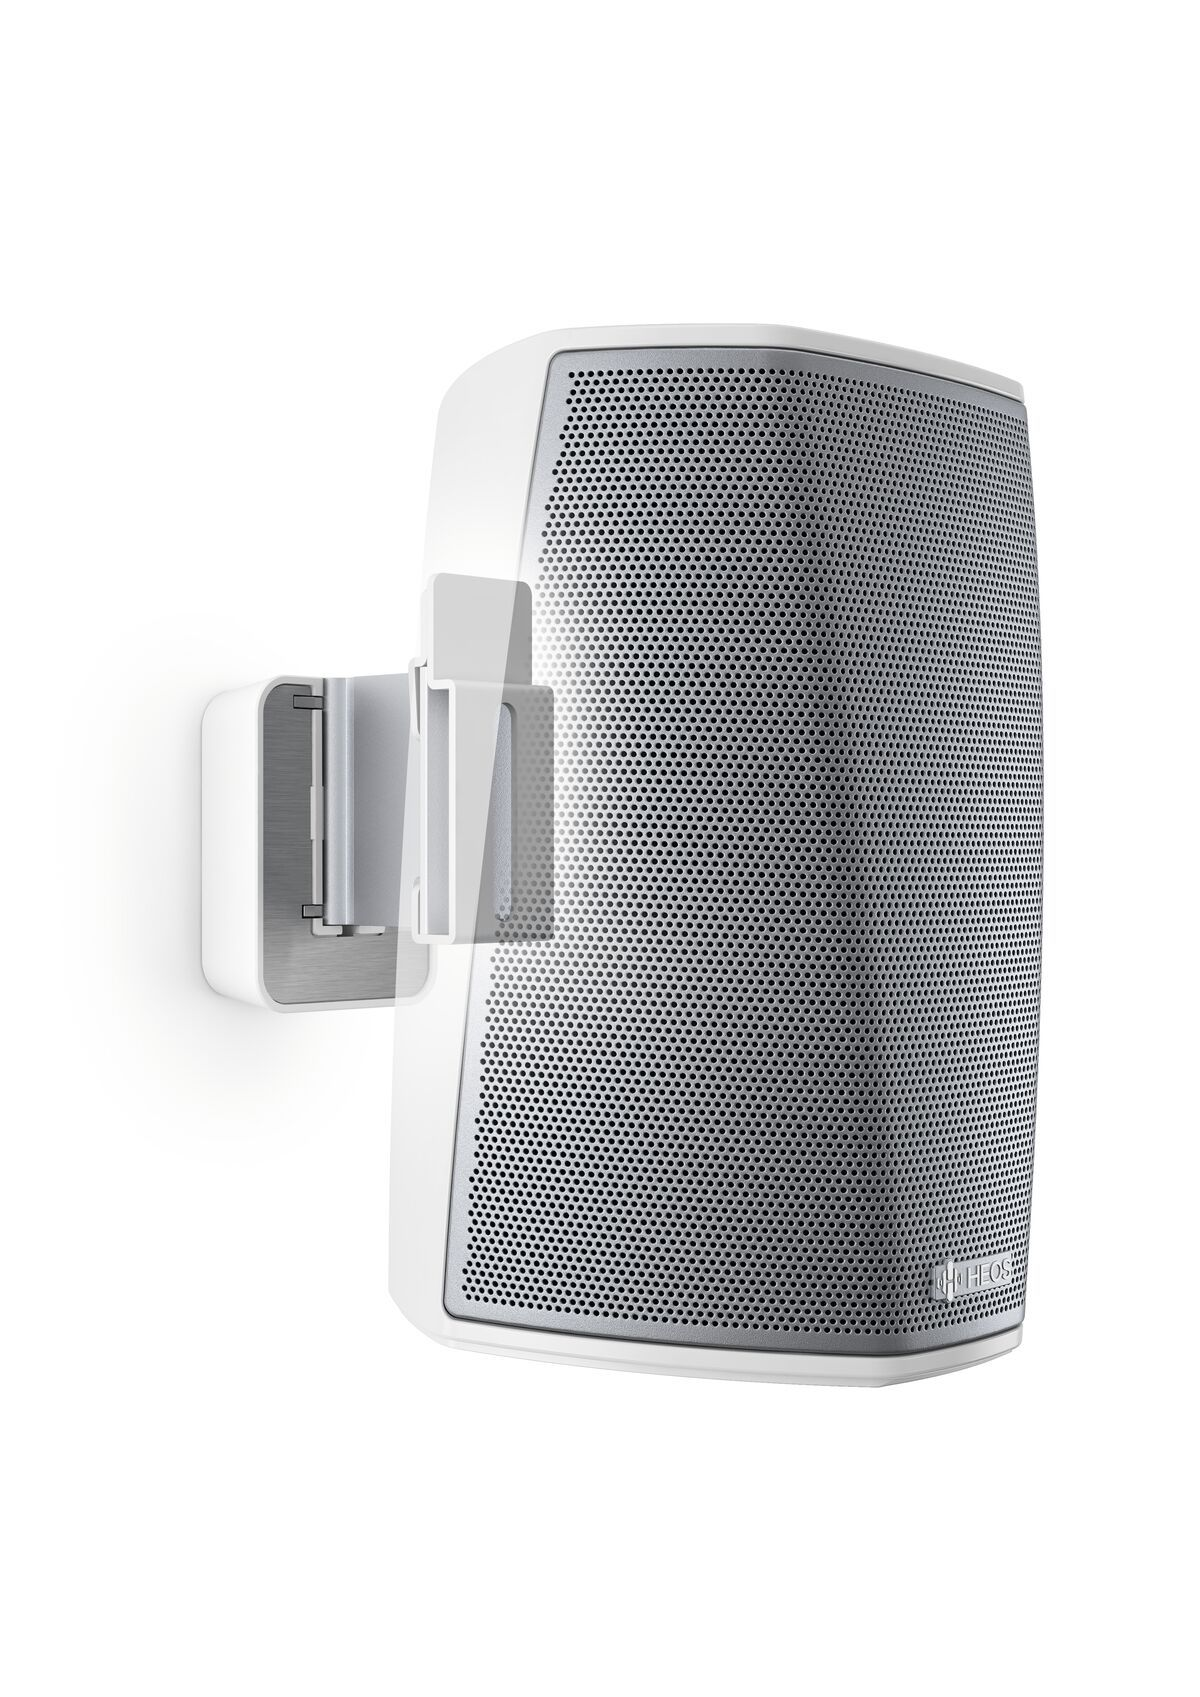 Vogel's SOUND 5201 Support enceinte pour Denon HEOS 1 (blanc) - Application